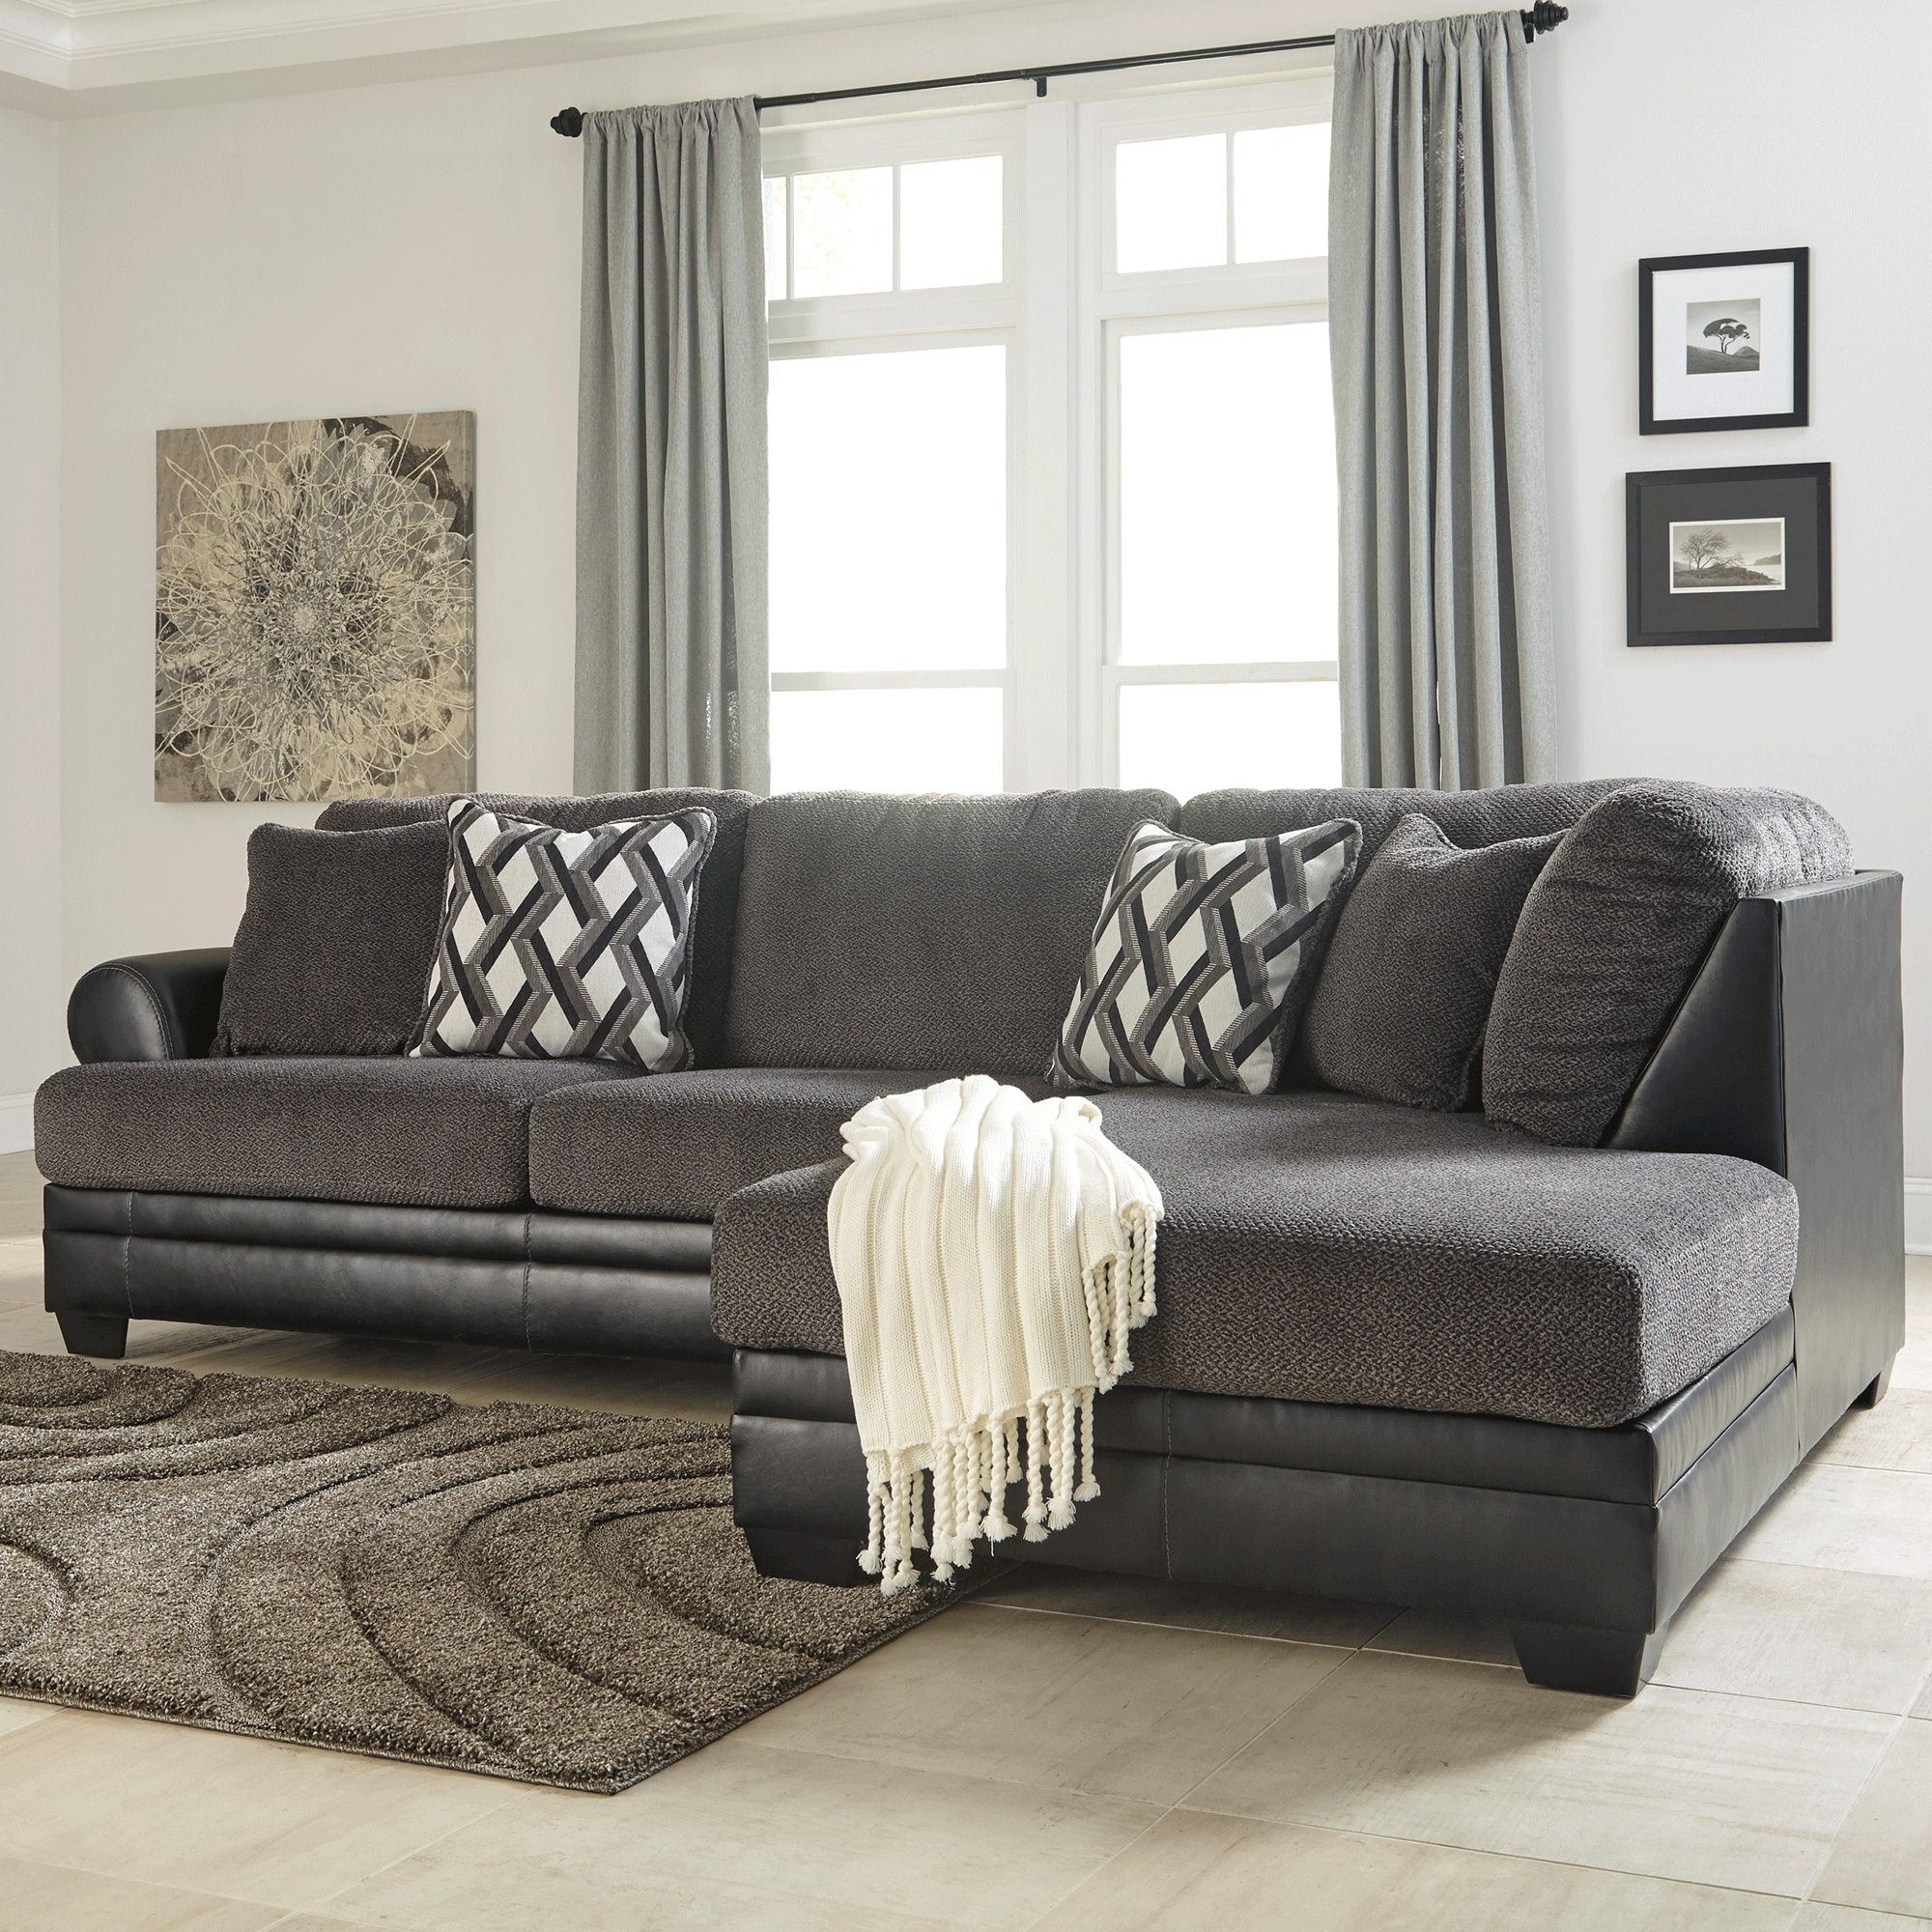 Ashley Furniture Sofa Chaises Throughout Most Current Kumasi Smoke 2 Piece Sectional – Bernie & Phyl's Furniture – (View 4 of 15)